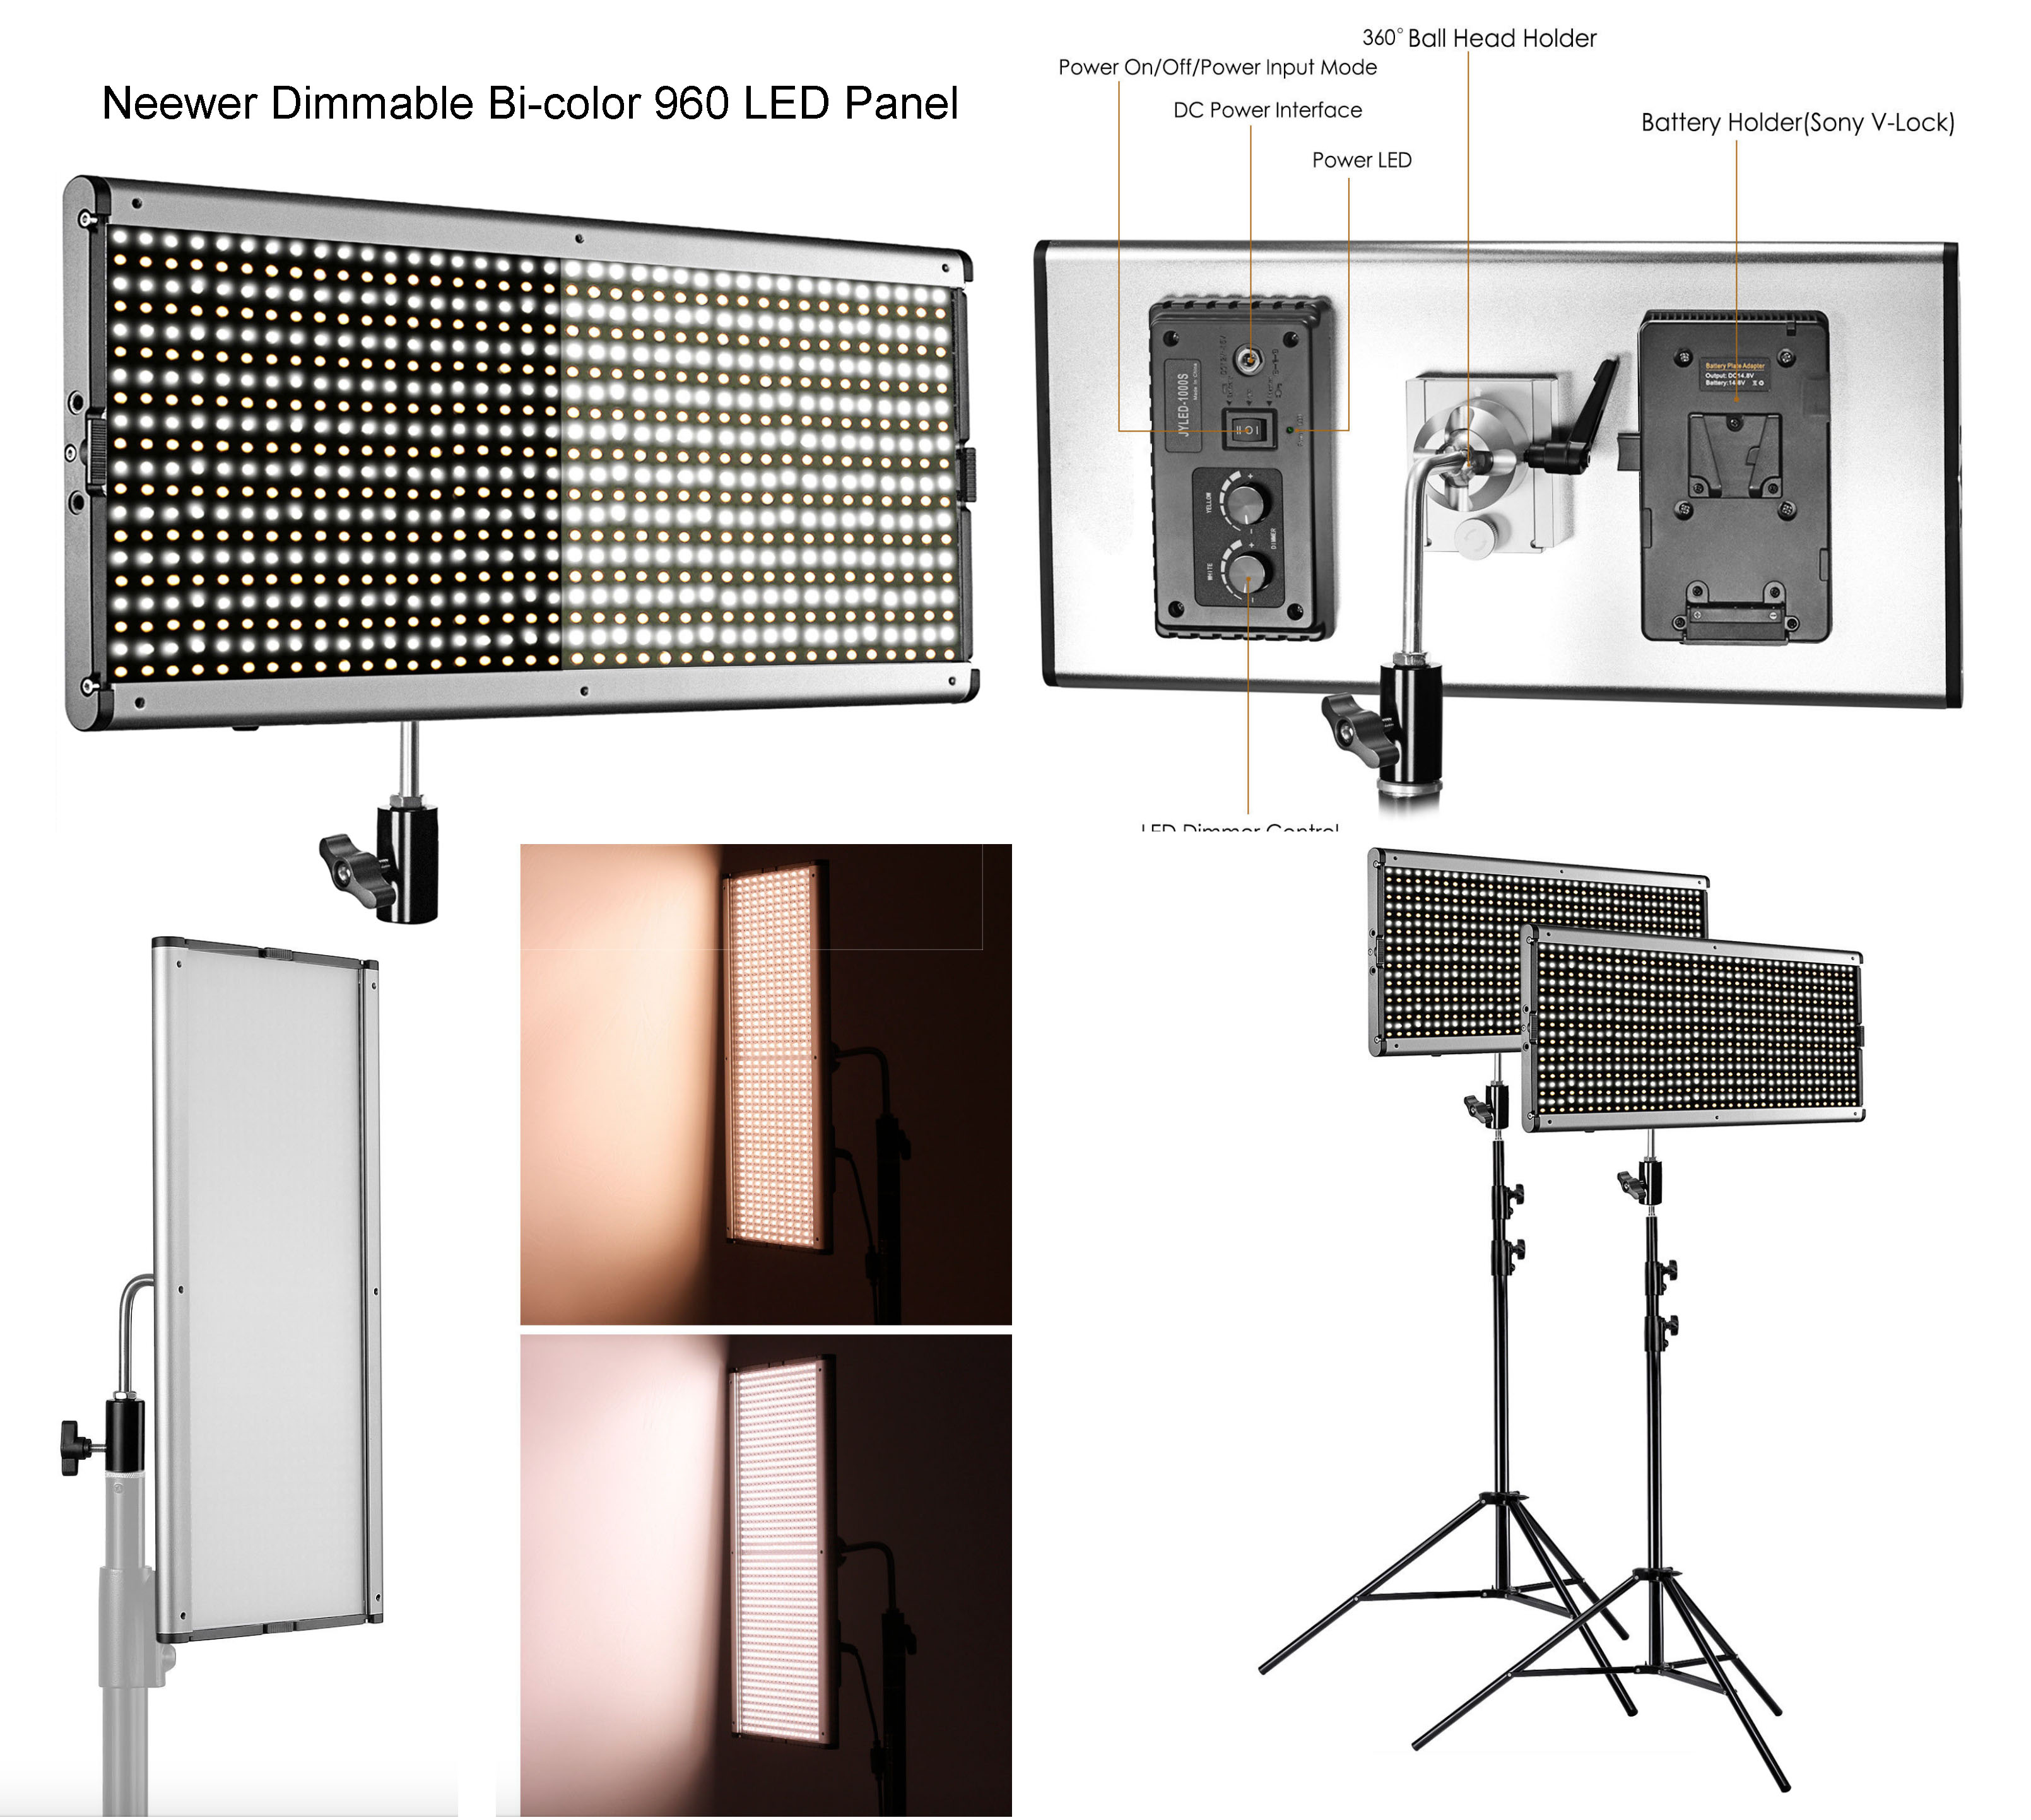 3x_Neewer Dimmable_Bi-color_960_LED_Panel